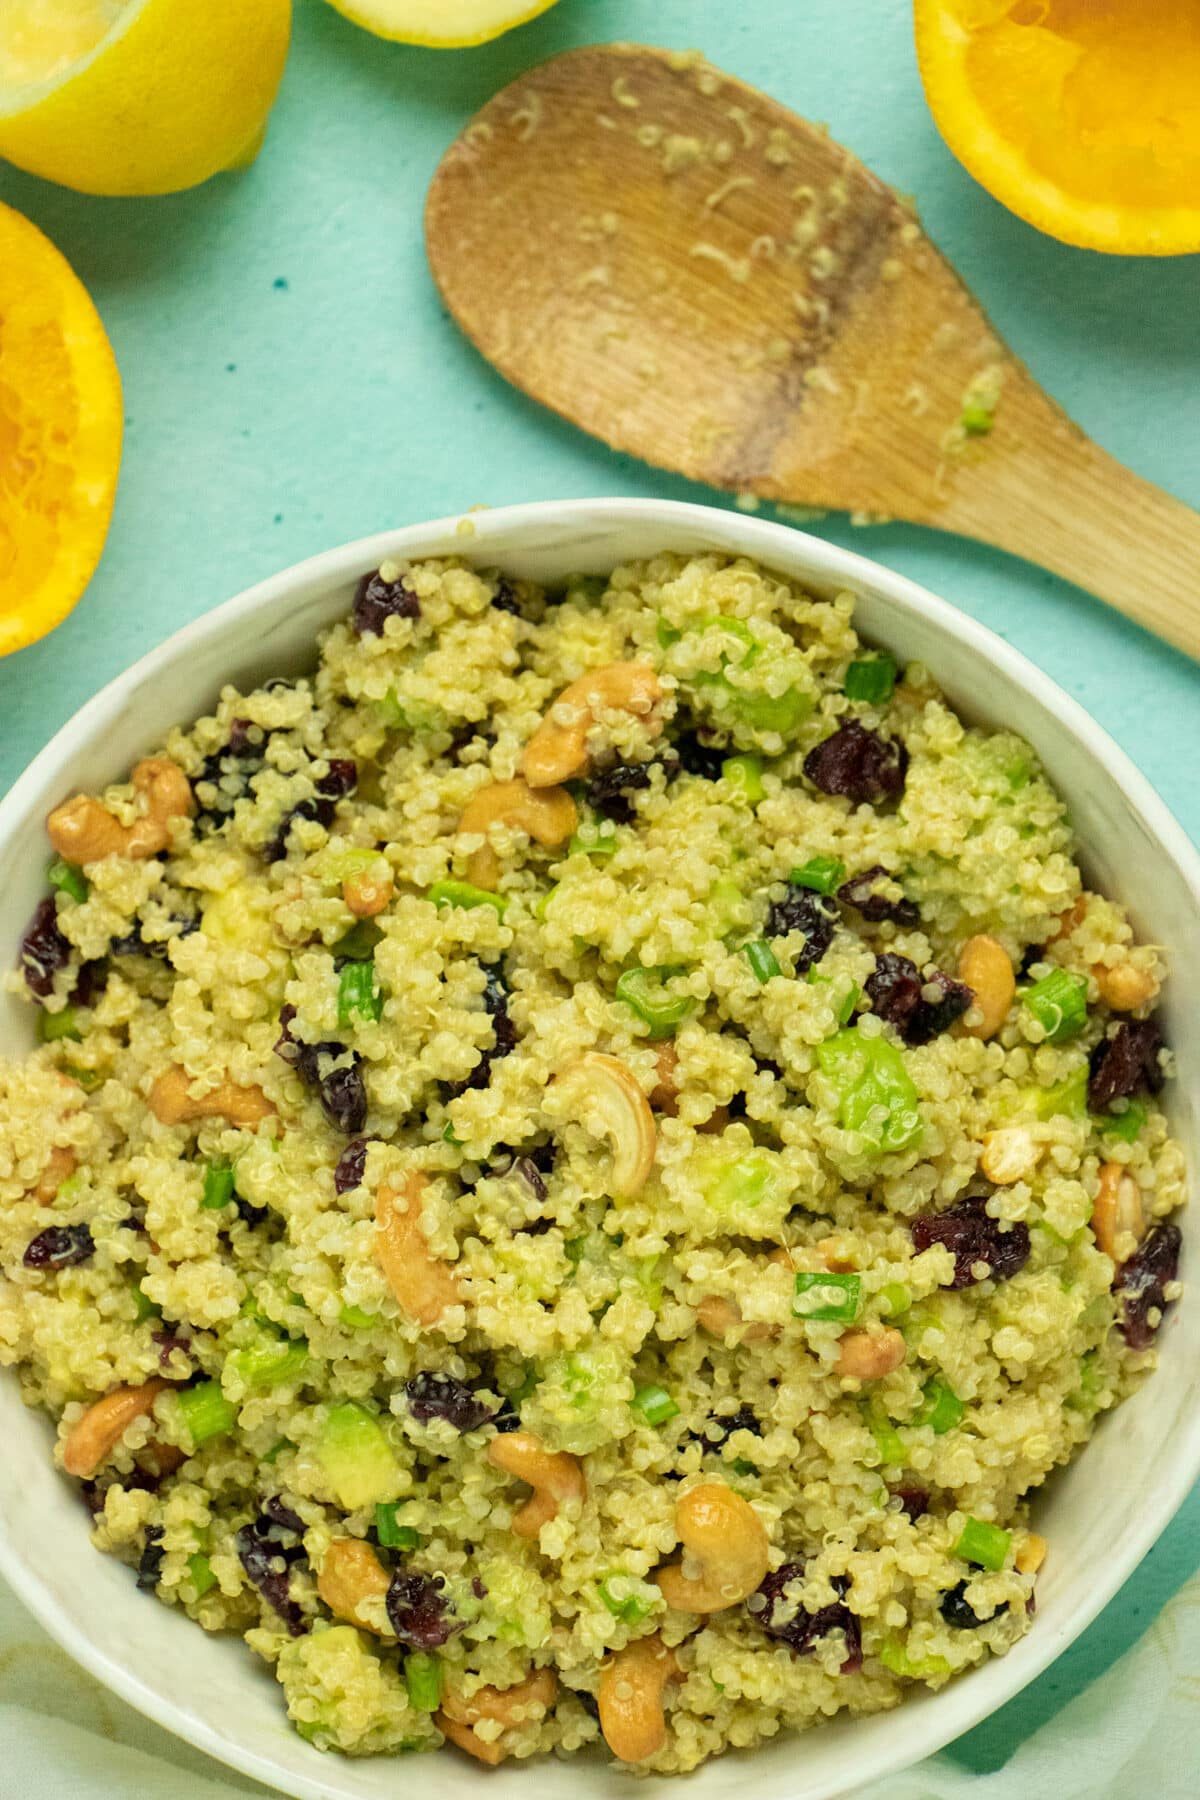 A serving bowl of Quinoa and Salad